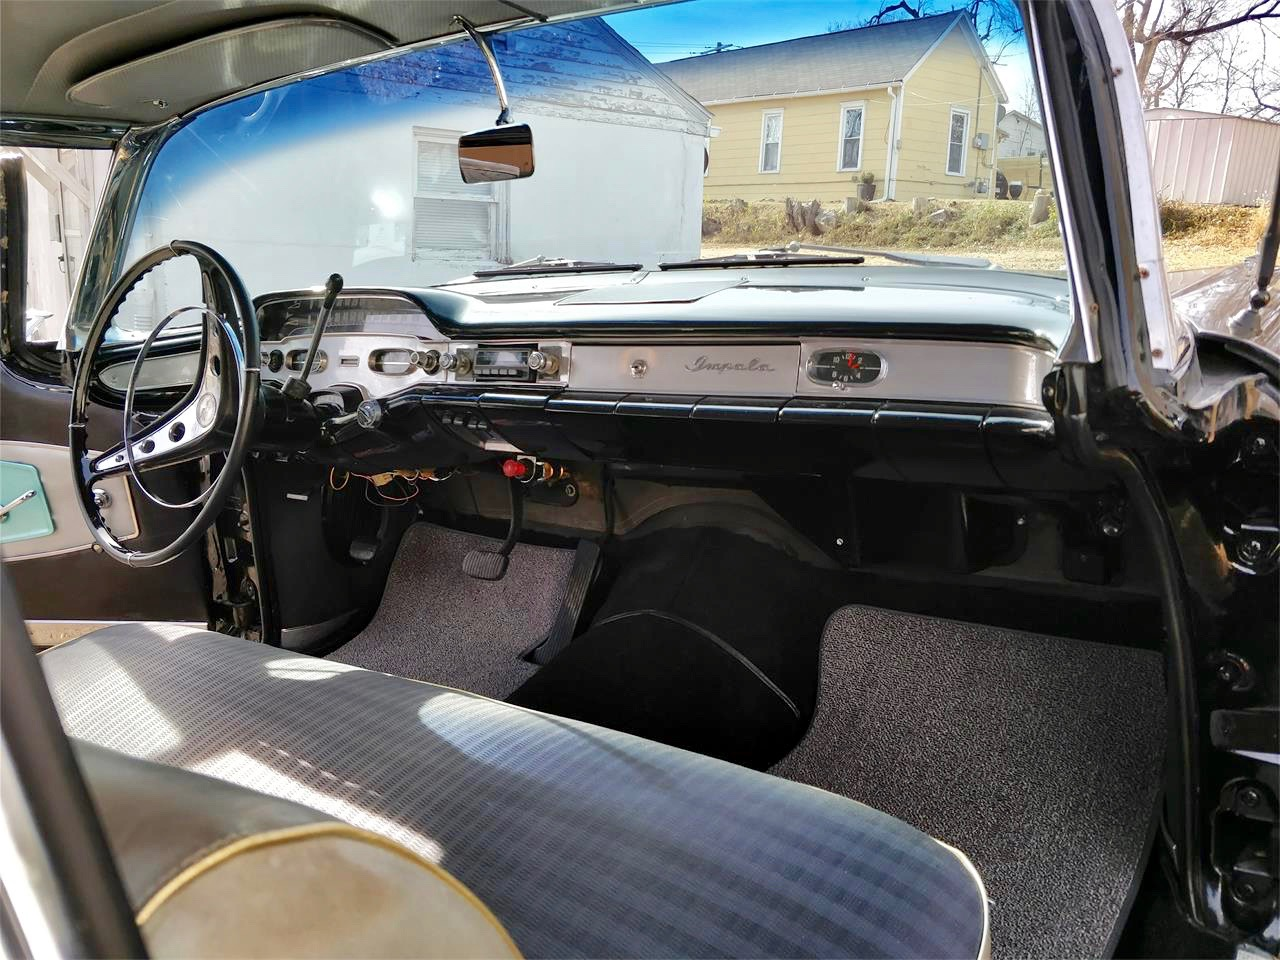 1958 Chevrolet Impala, 1958 Chevy Impala 2-door coupe a 'midnight beauty', ClassicCars.com Journal